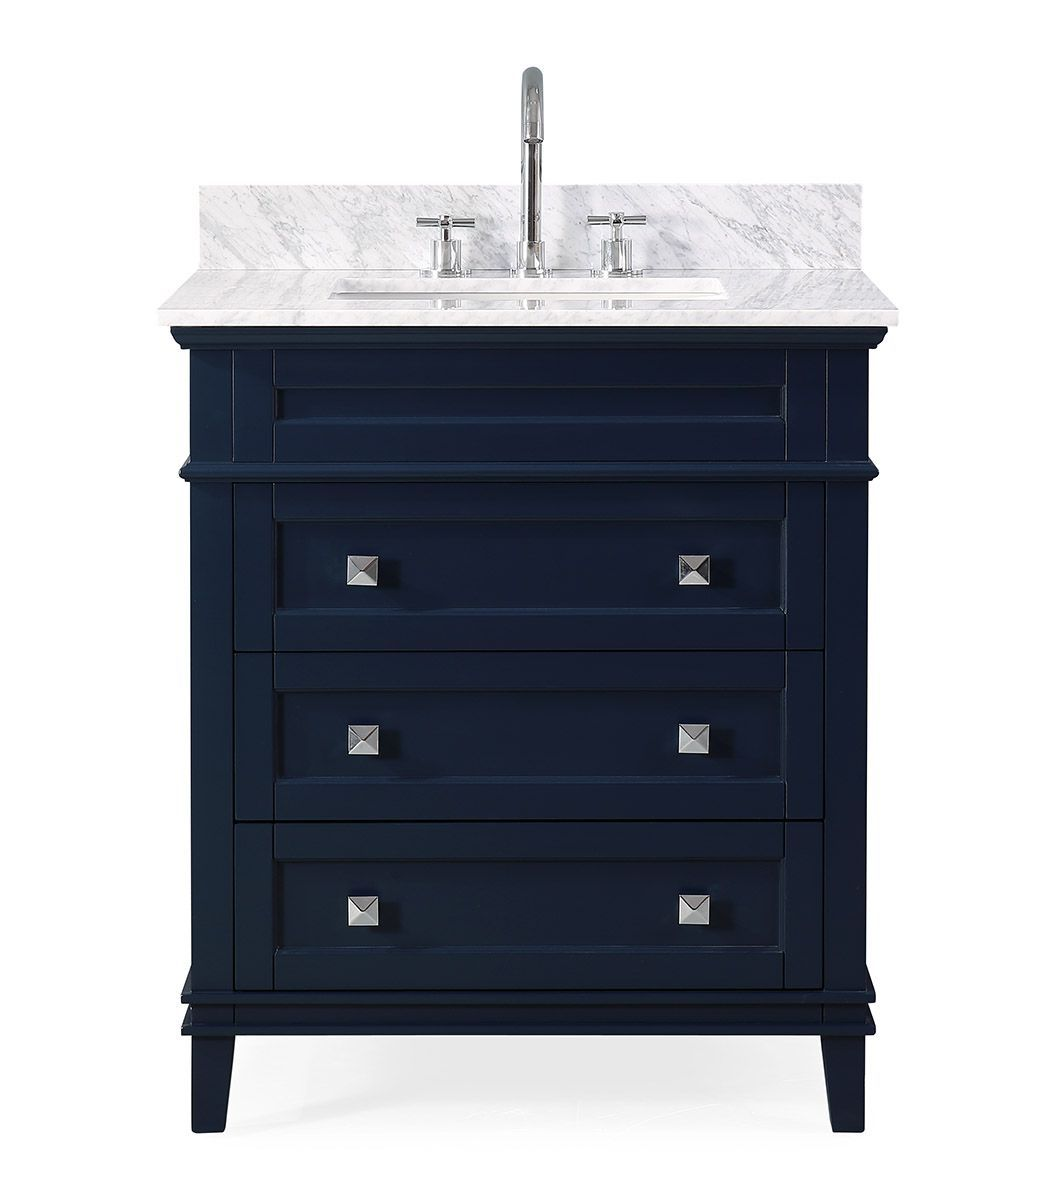 "30"" Contemporary Single Sink Navy Blue Bathroom Vanity with Italian Carrara Marble Countertop"